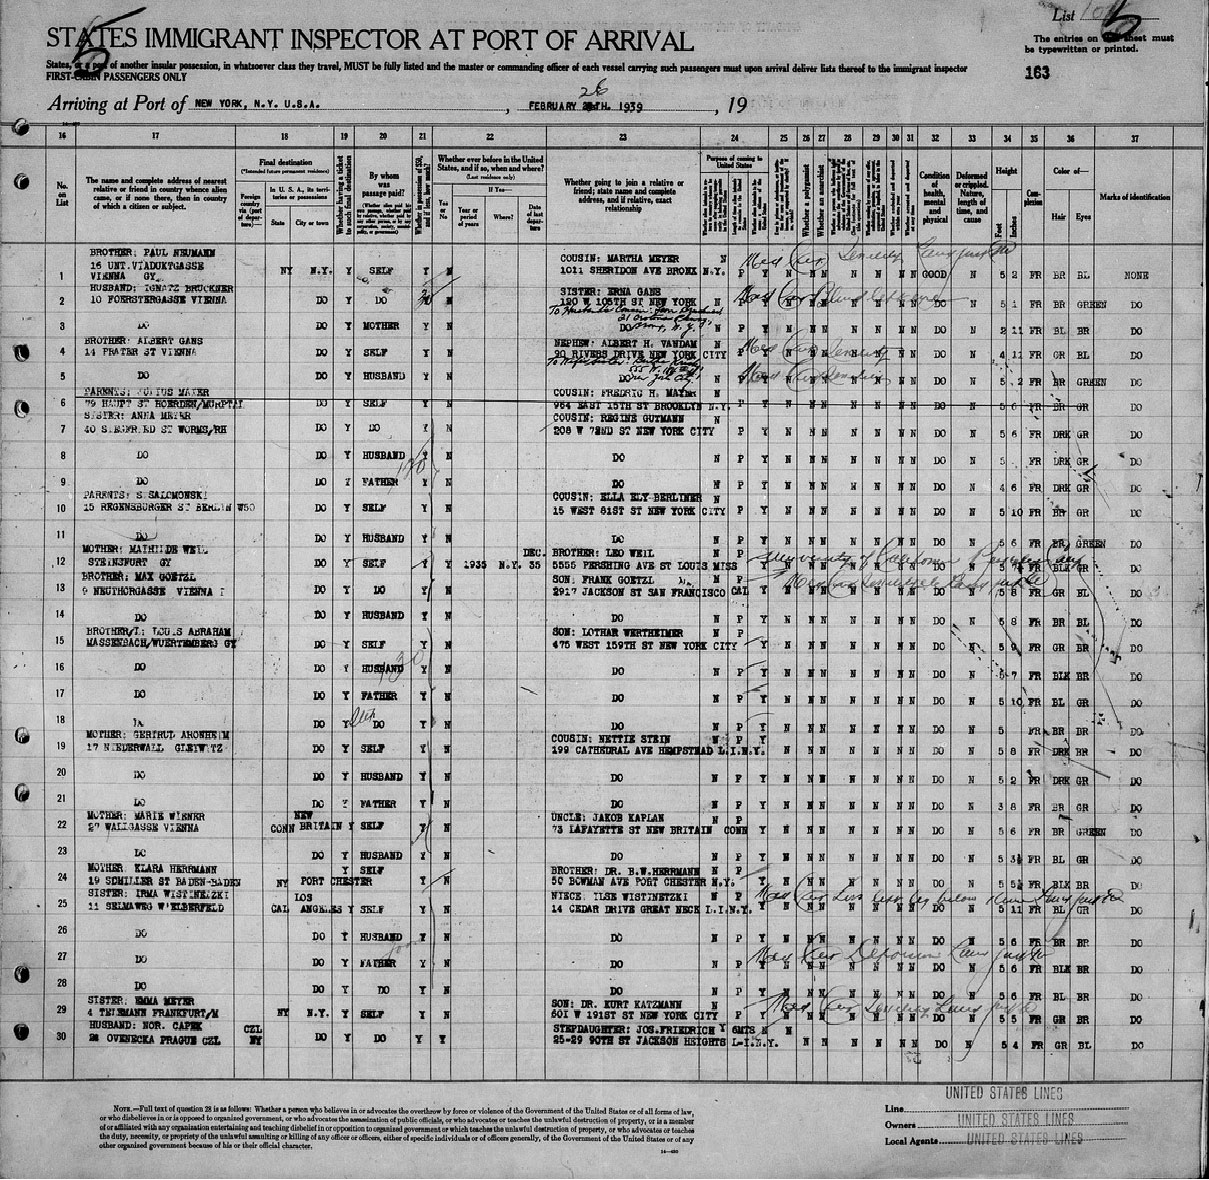 Ship Manifest, S.S. President Roosevelt, February 15, 1939. National Archives, Washington, DC/Ancestry.com